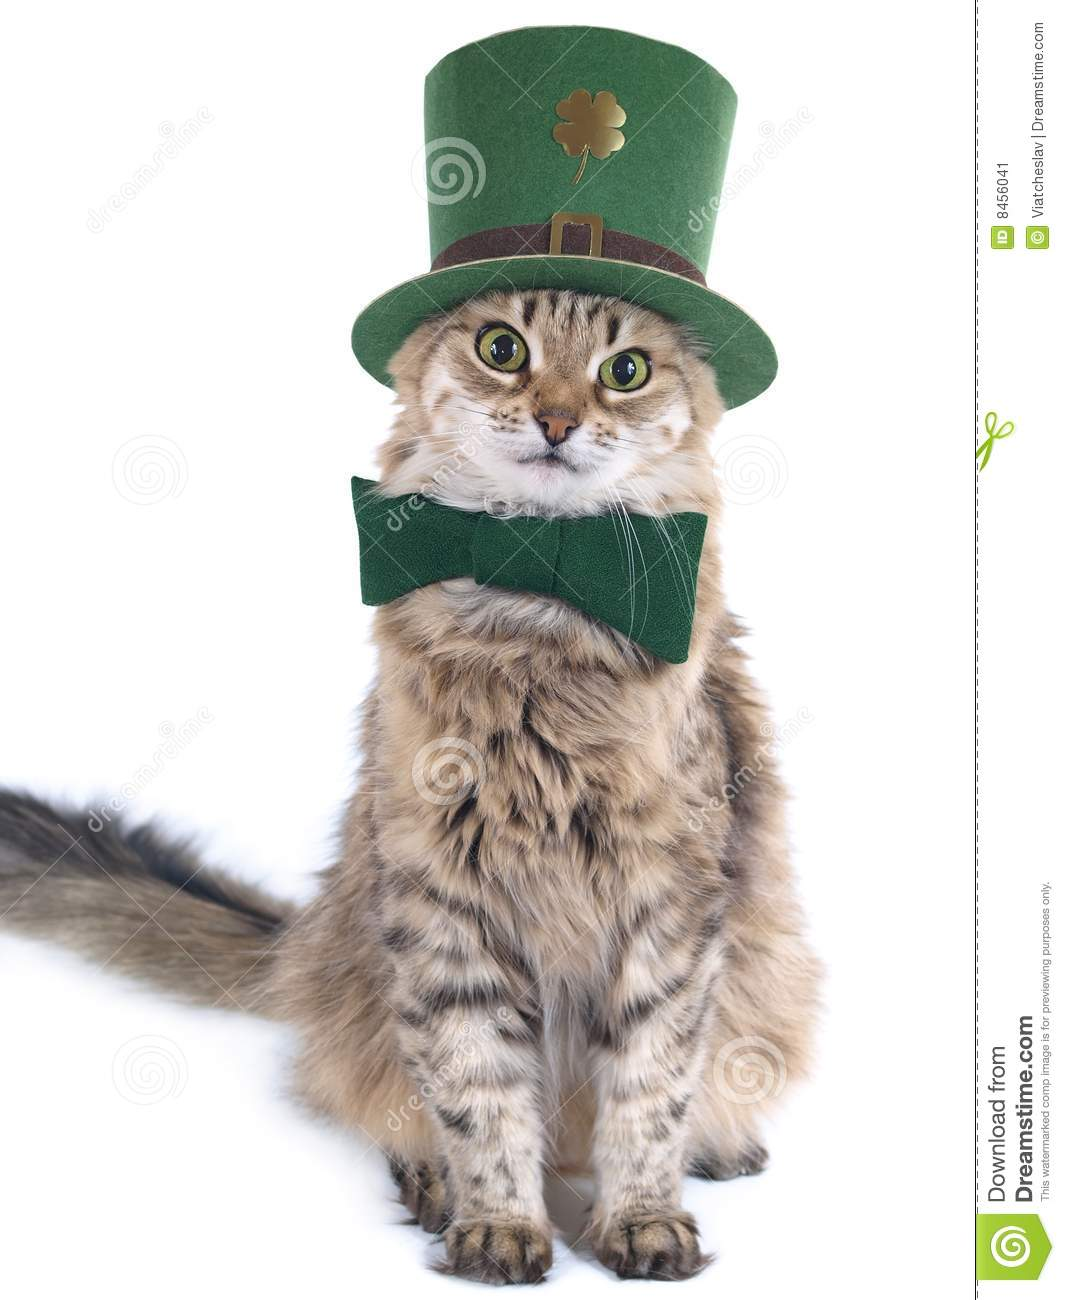 36] St Patricks Day Cat Wallpaper on WallpaperSafari 1065x1300